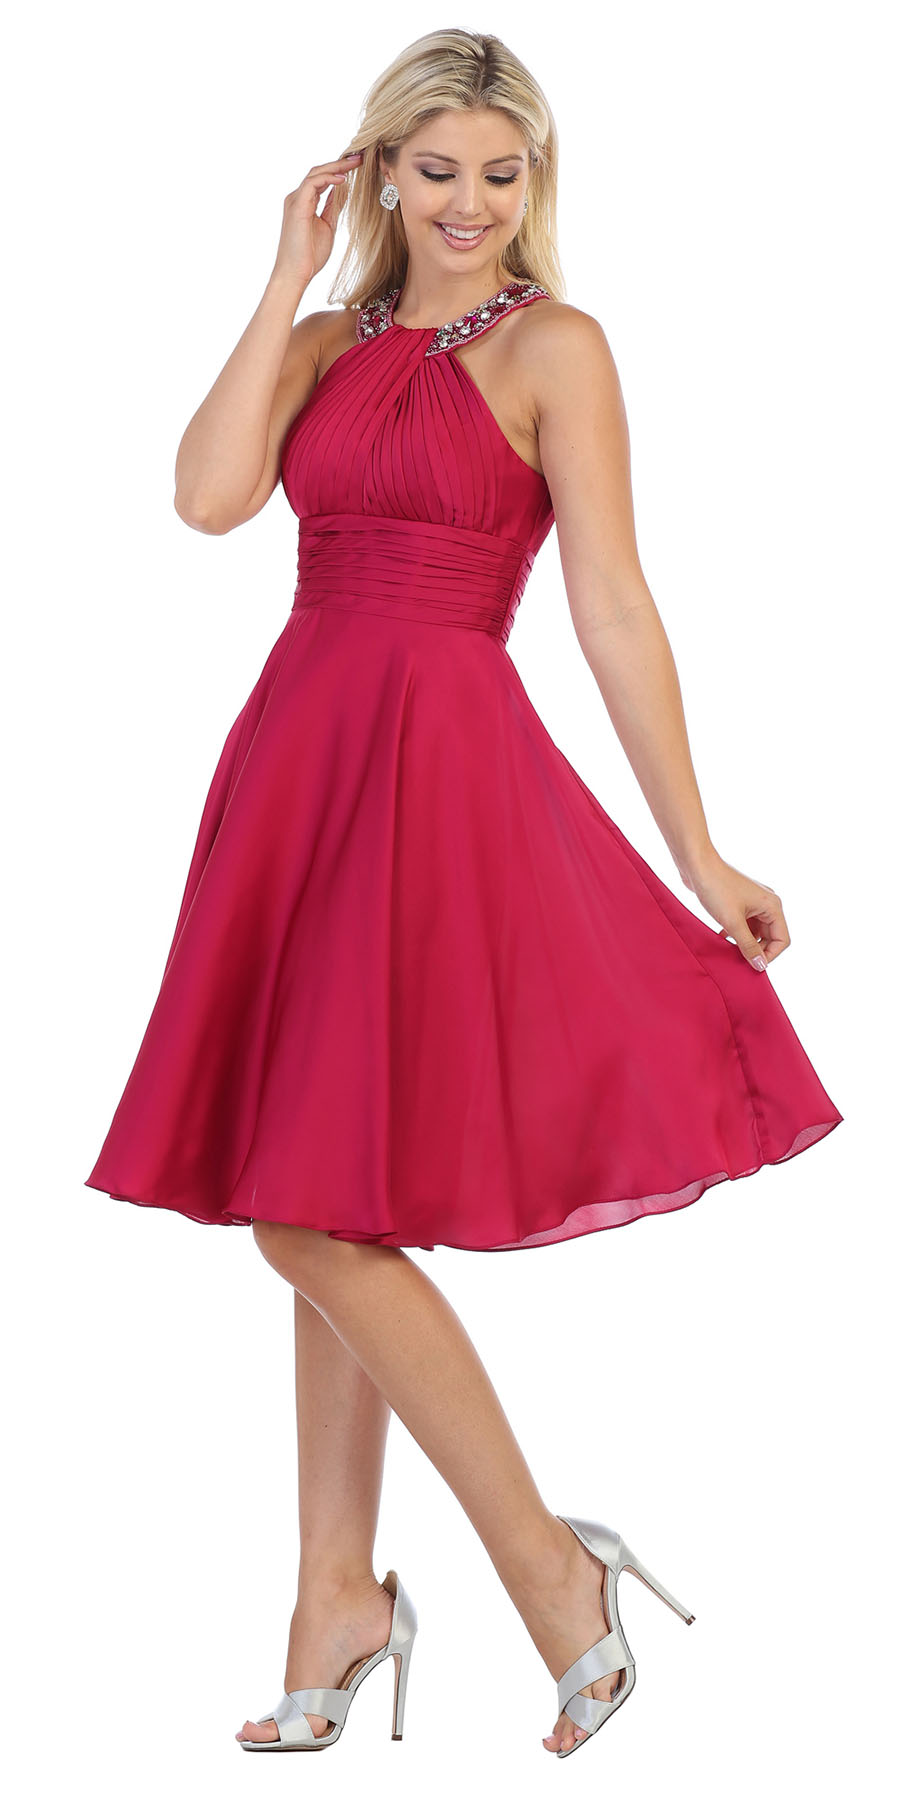 New Short Bridesmaid Graduation Homecoming Dress Cocktail